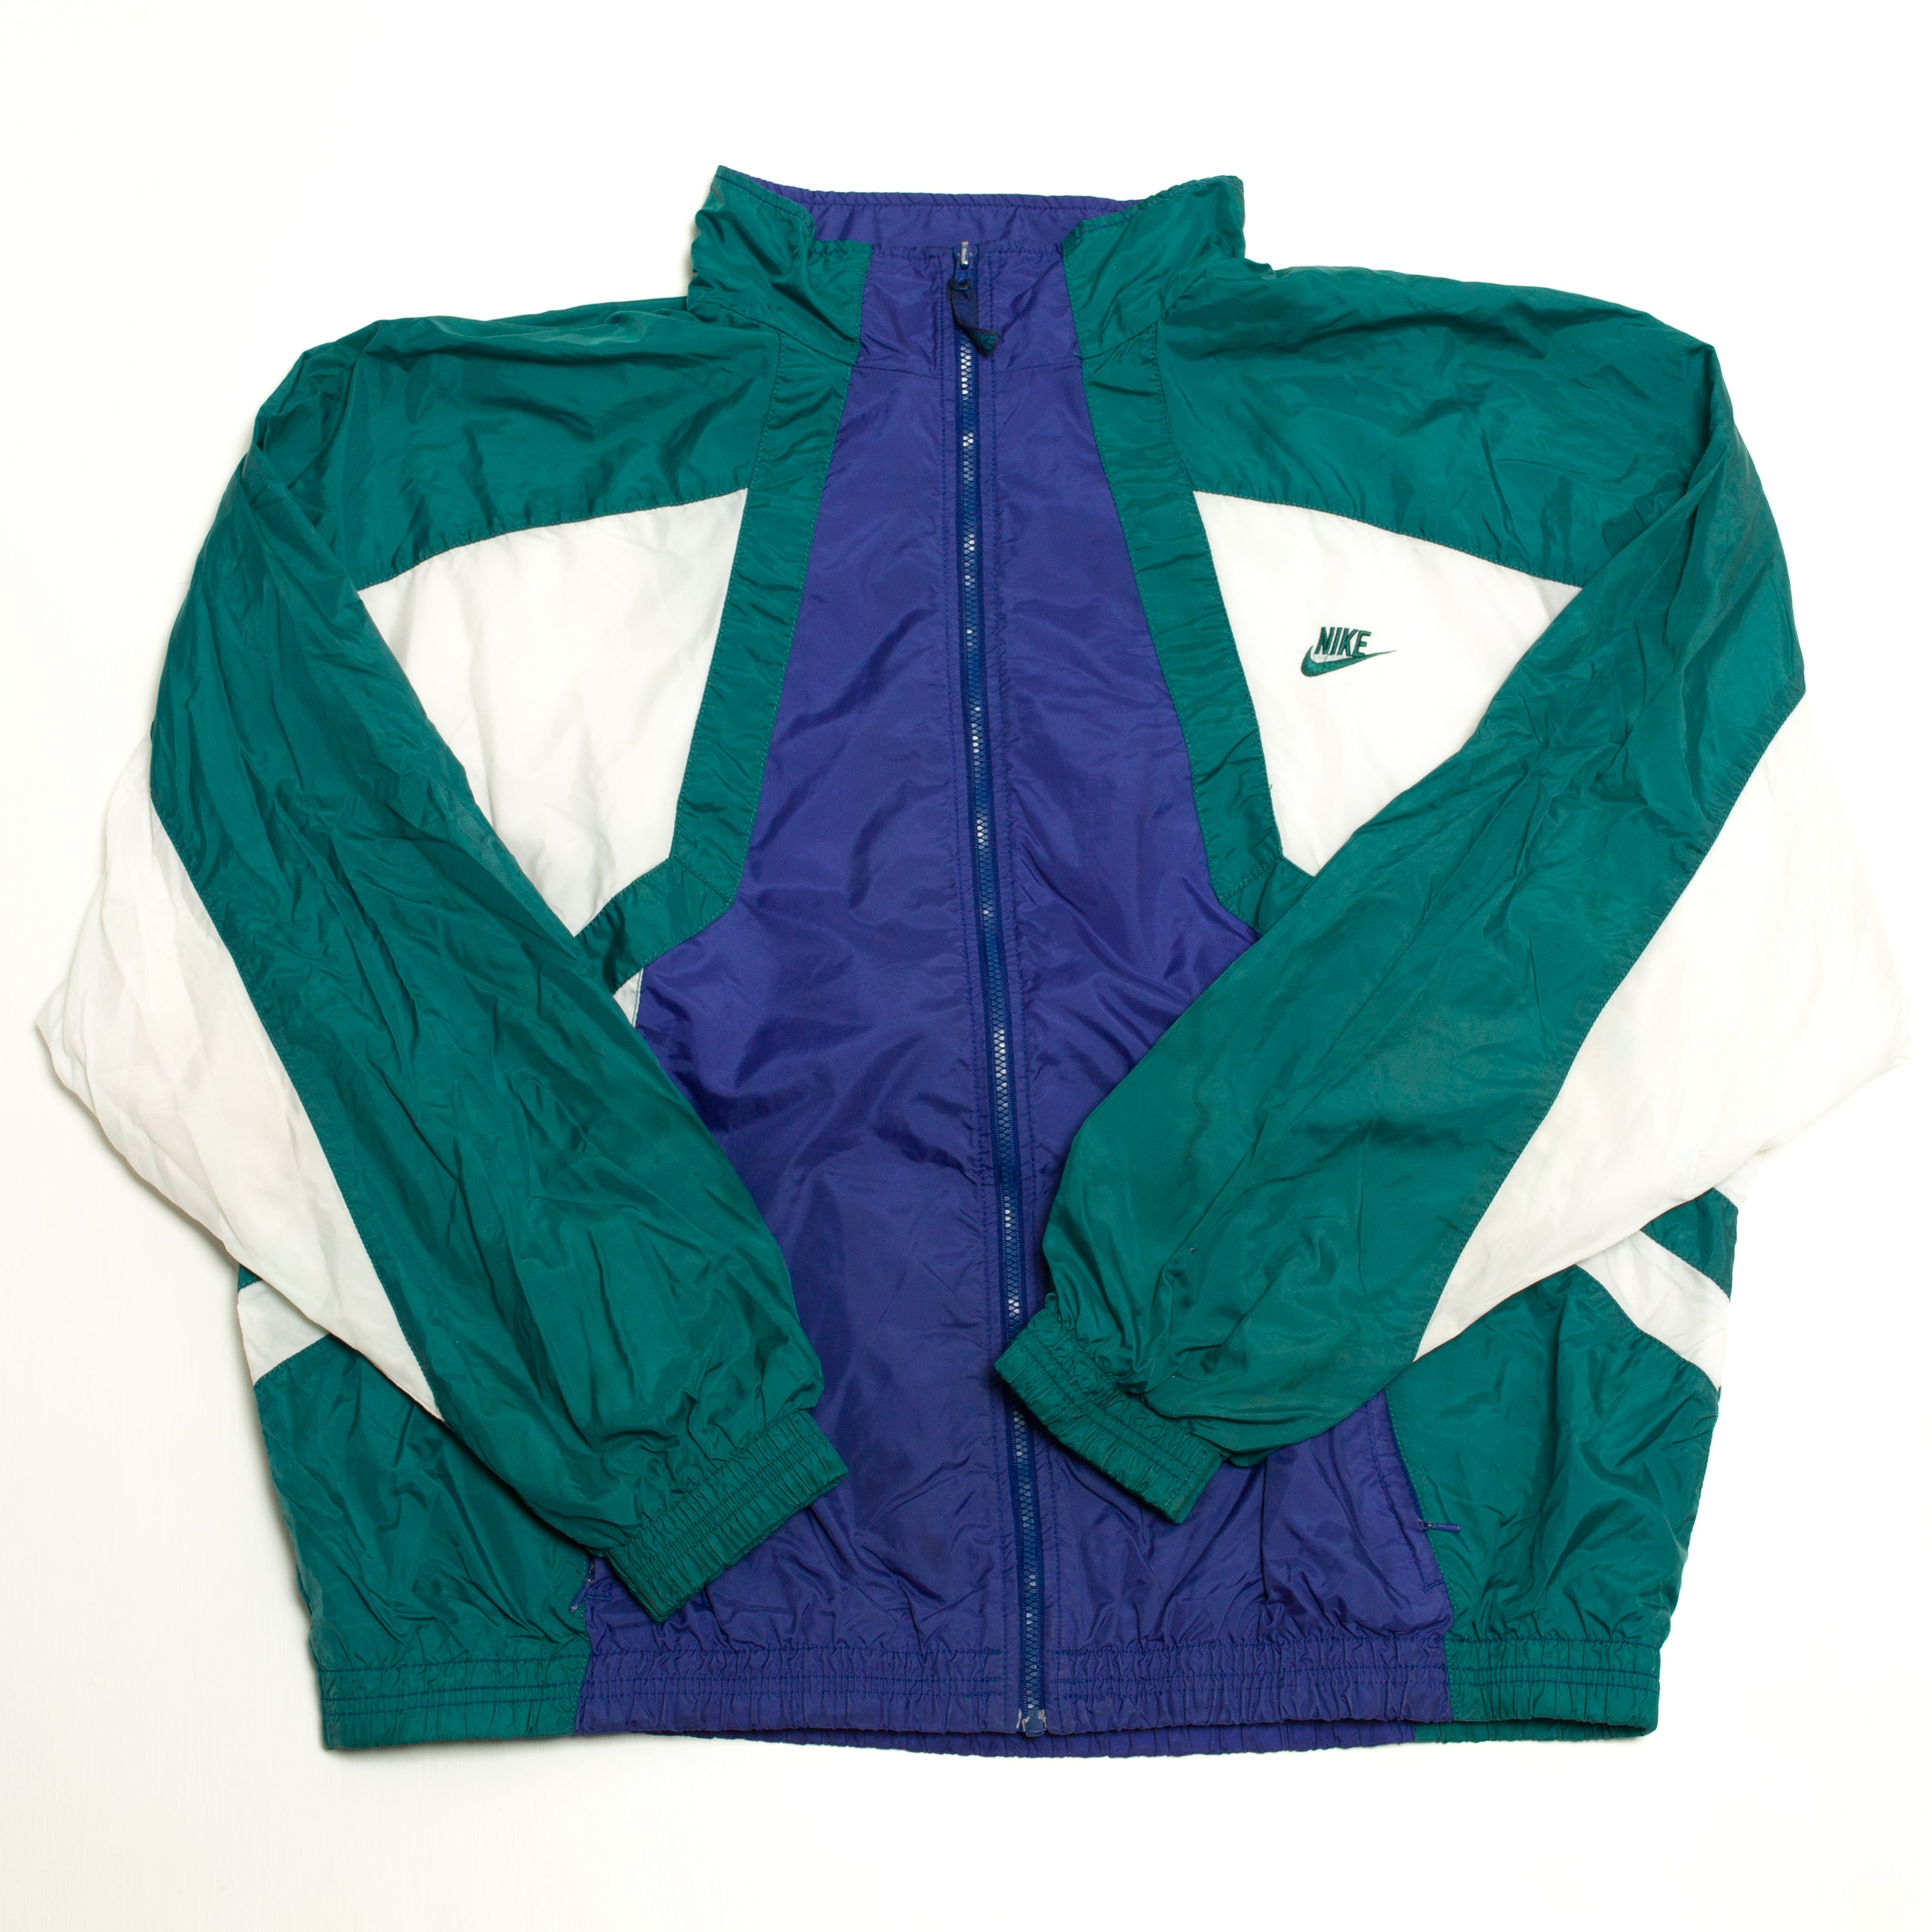 Vintage 90's Nike Wind Breaker Jacket